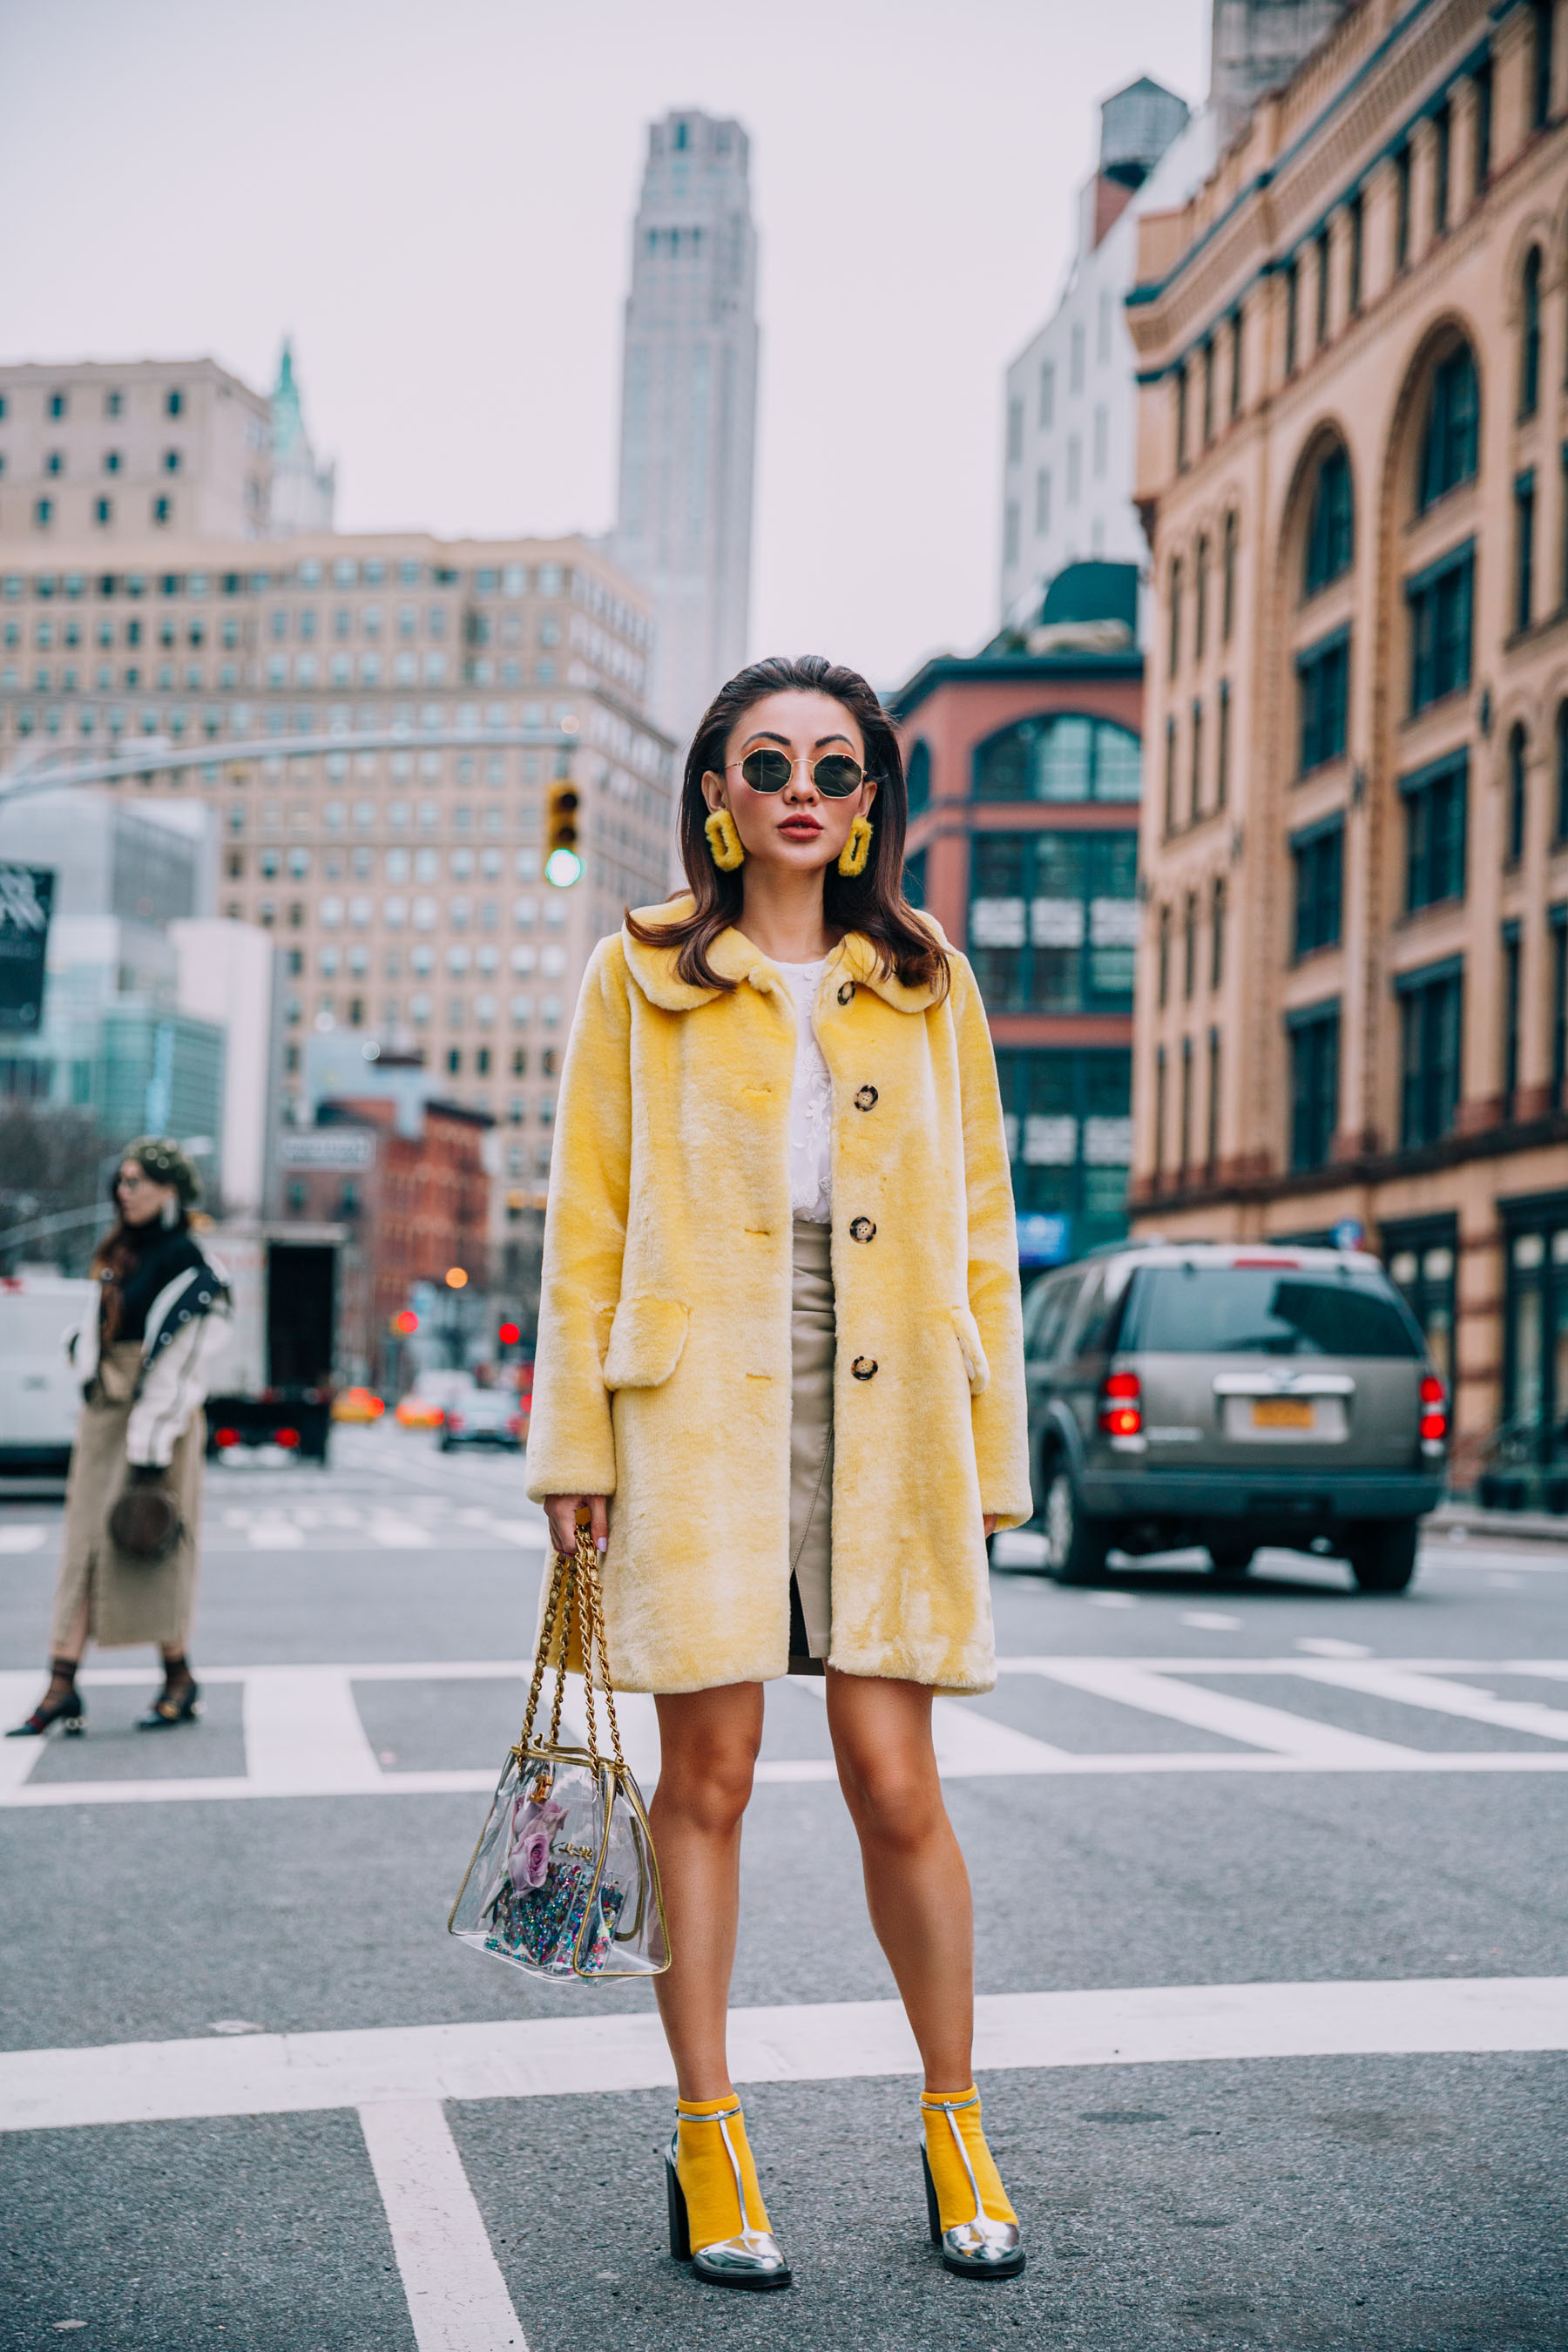 NYFW 2018 Street Style - Yellow Shrimps Coat with Chanel Clear Bag // Notjessfashion.com